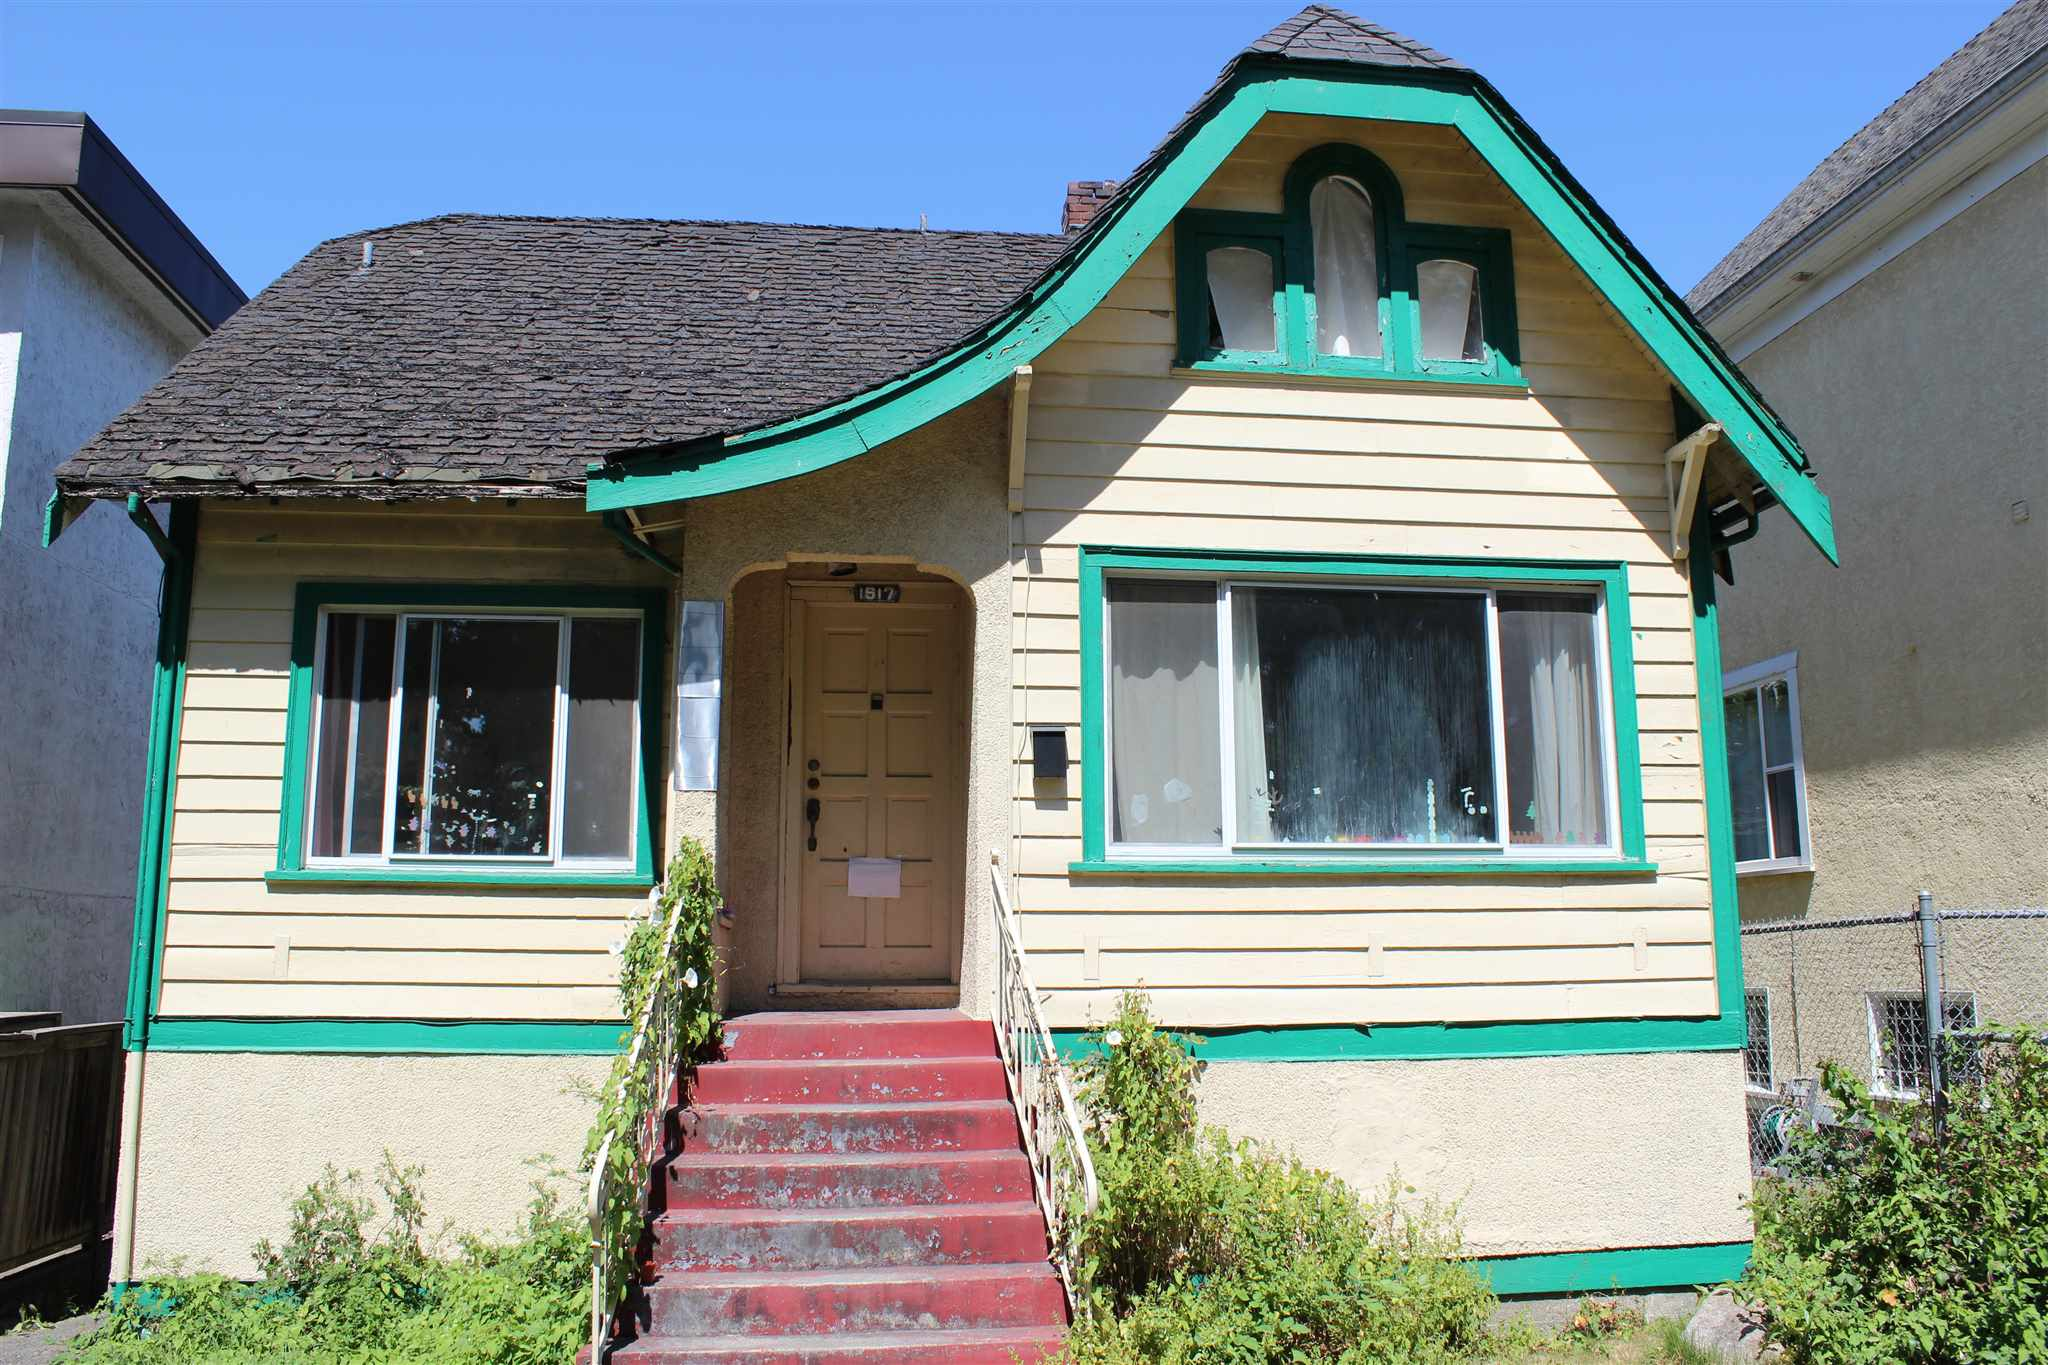 1517 FRANCES STREET - Hastings House/Single Family for sale, 6 Bedrooms (R2616742) - #1